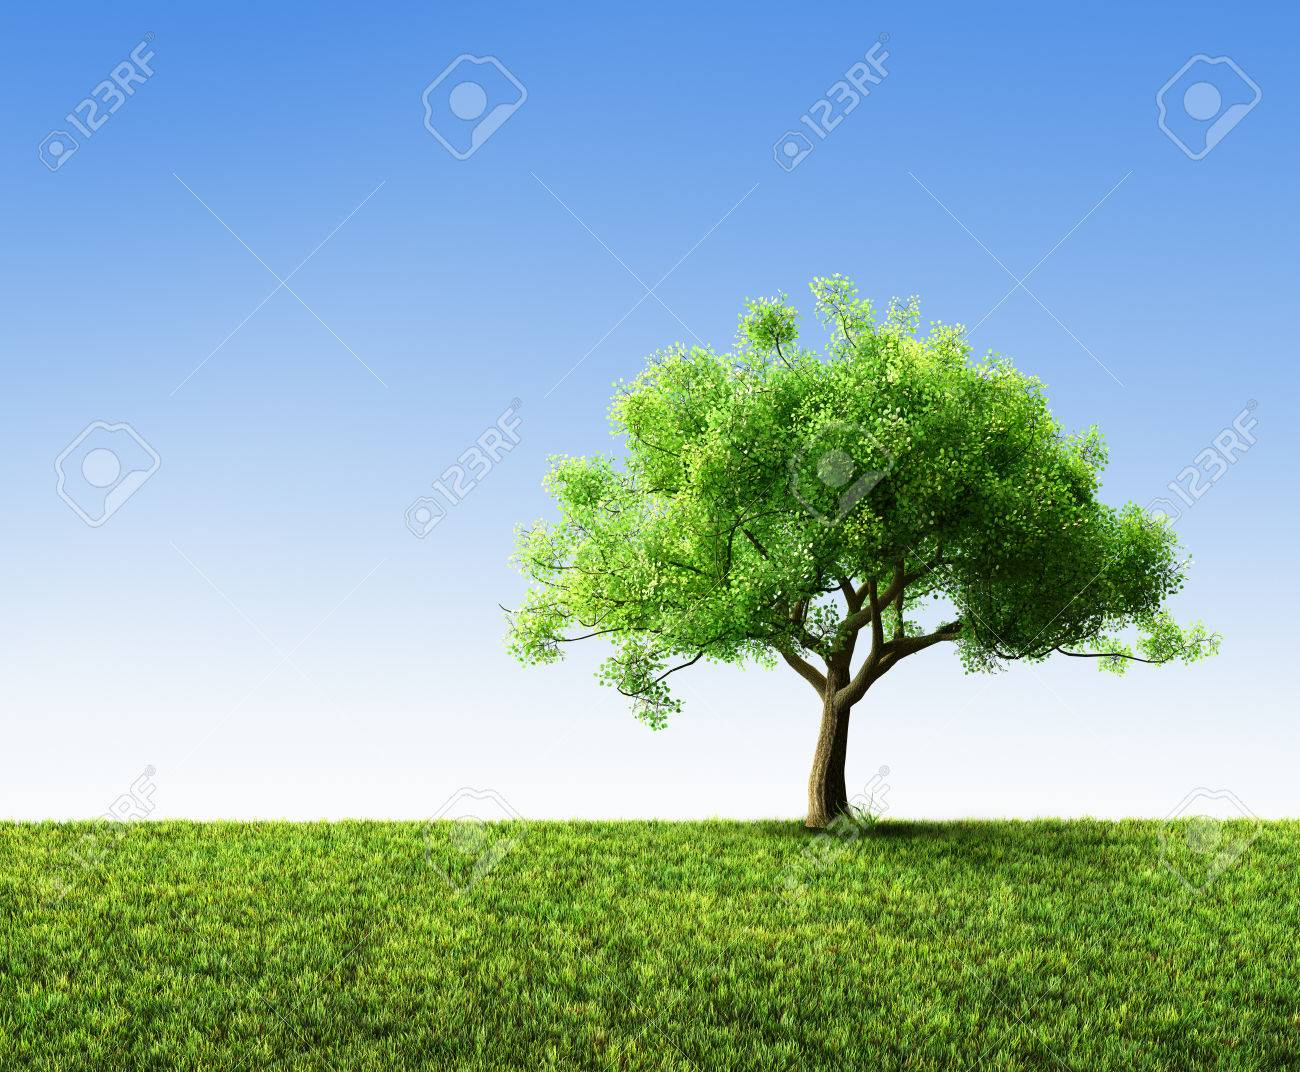 tree with grass - 37440748